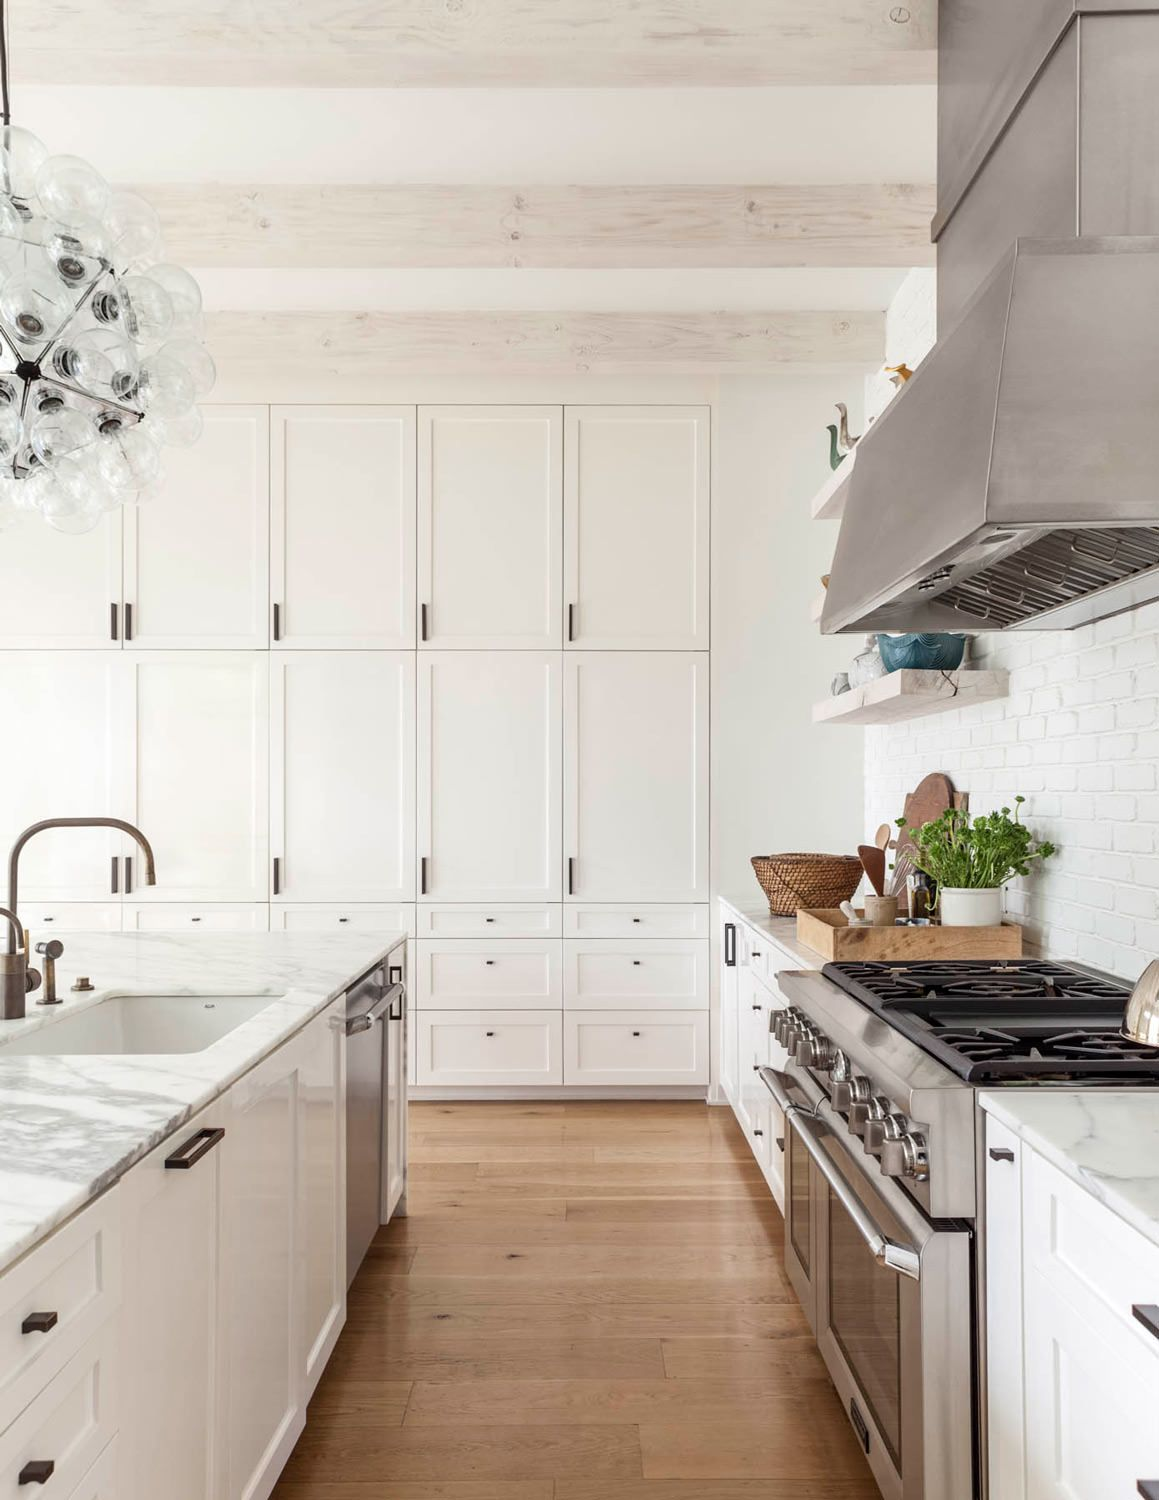 Cabinetry whitewashed beams kitchen ideas pinterest beams